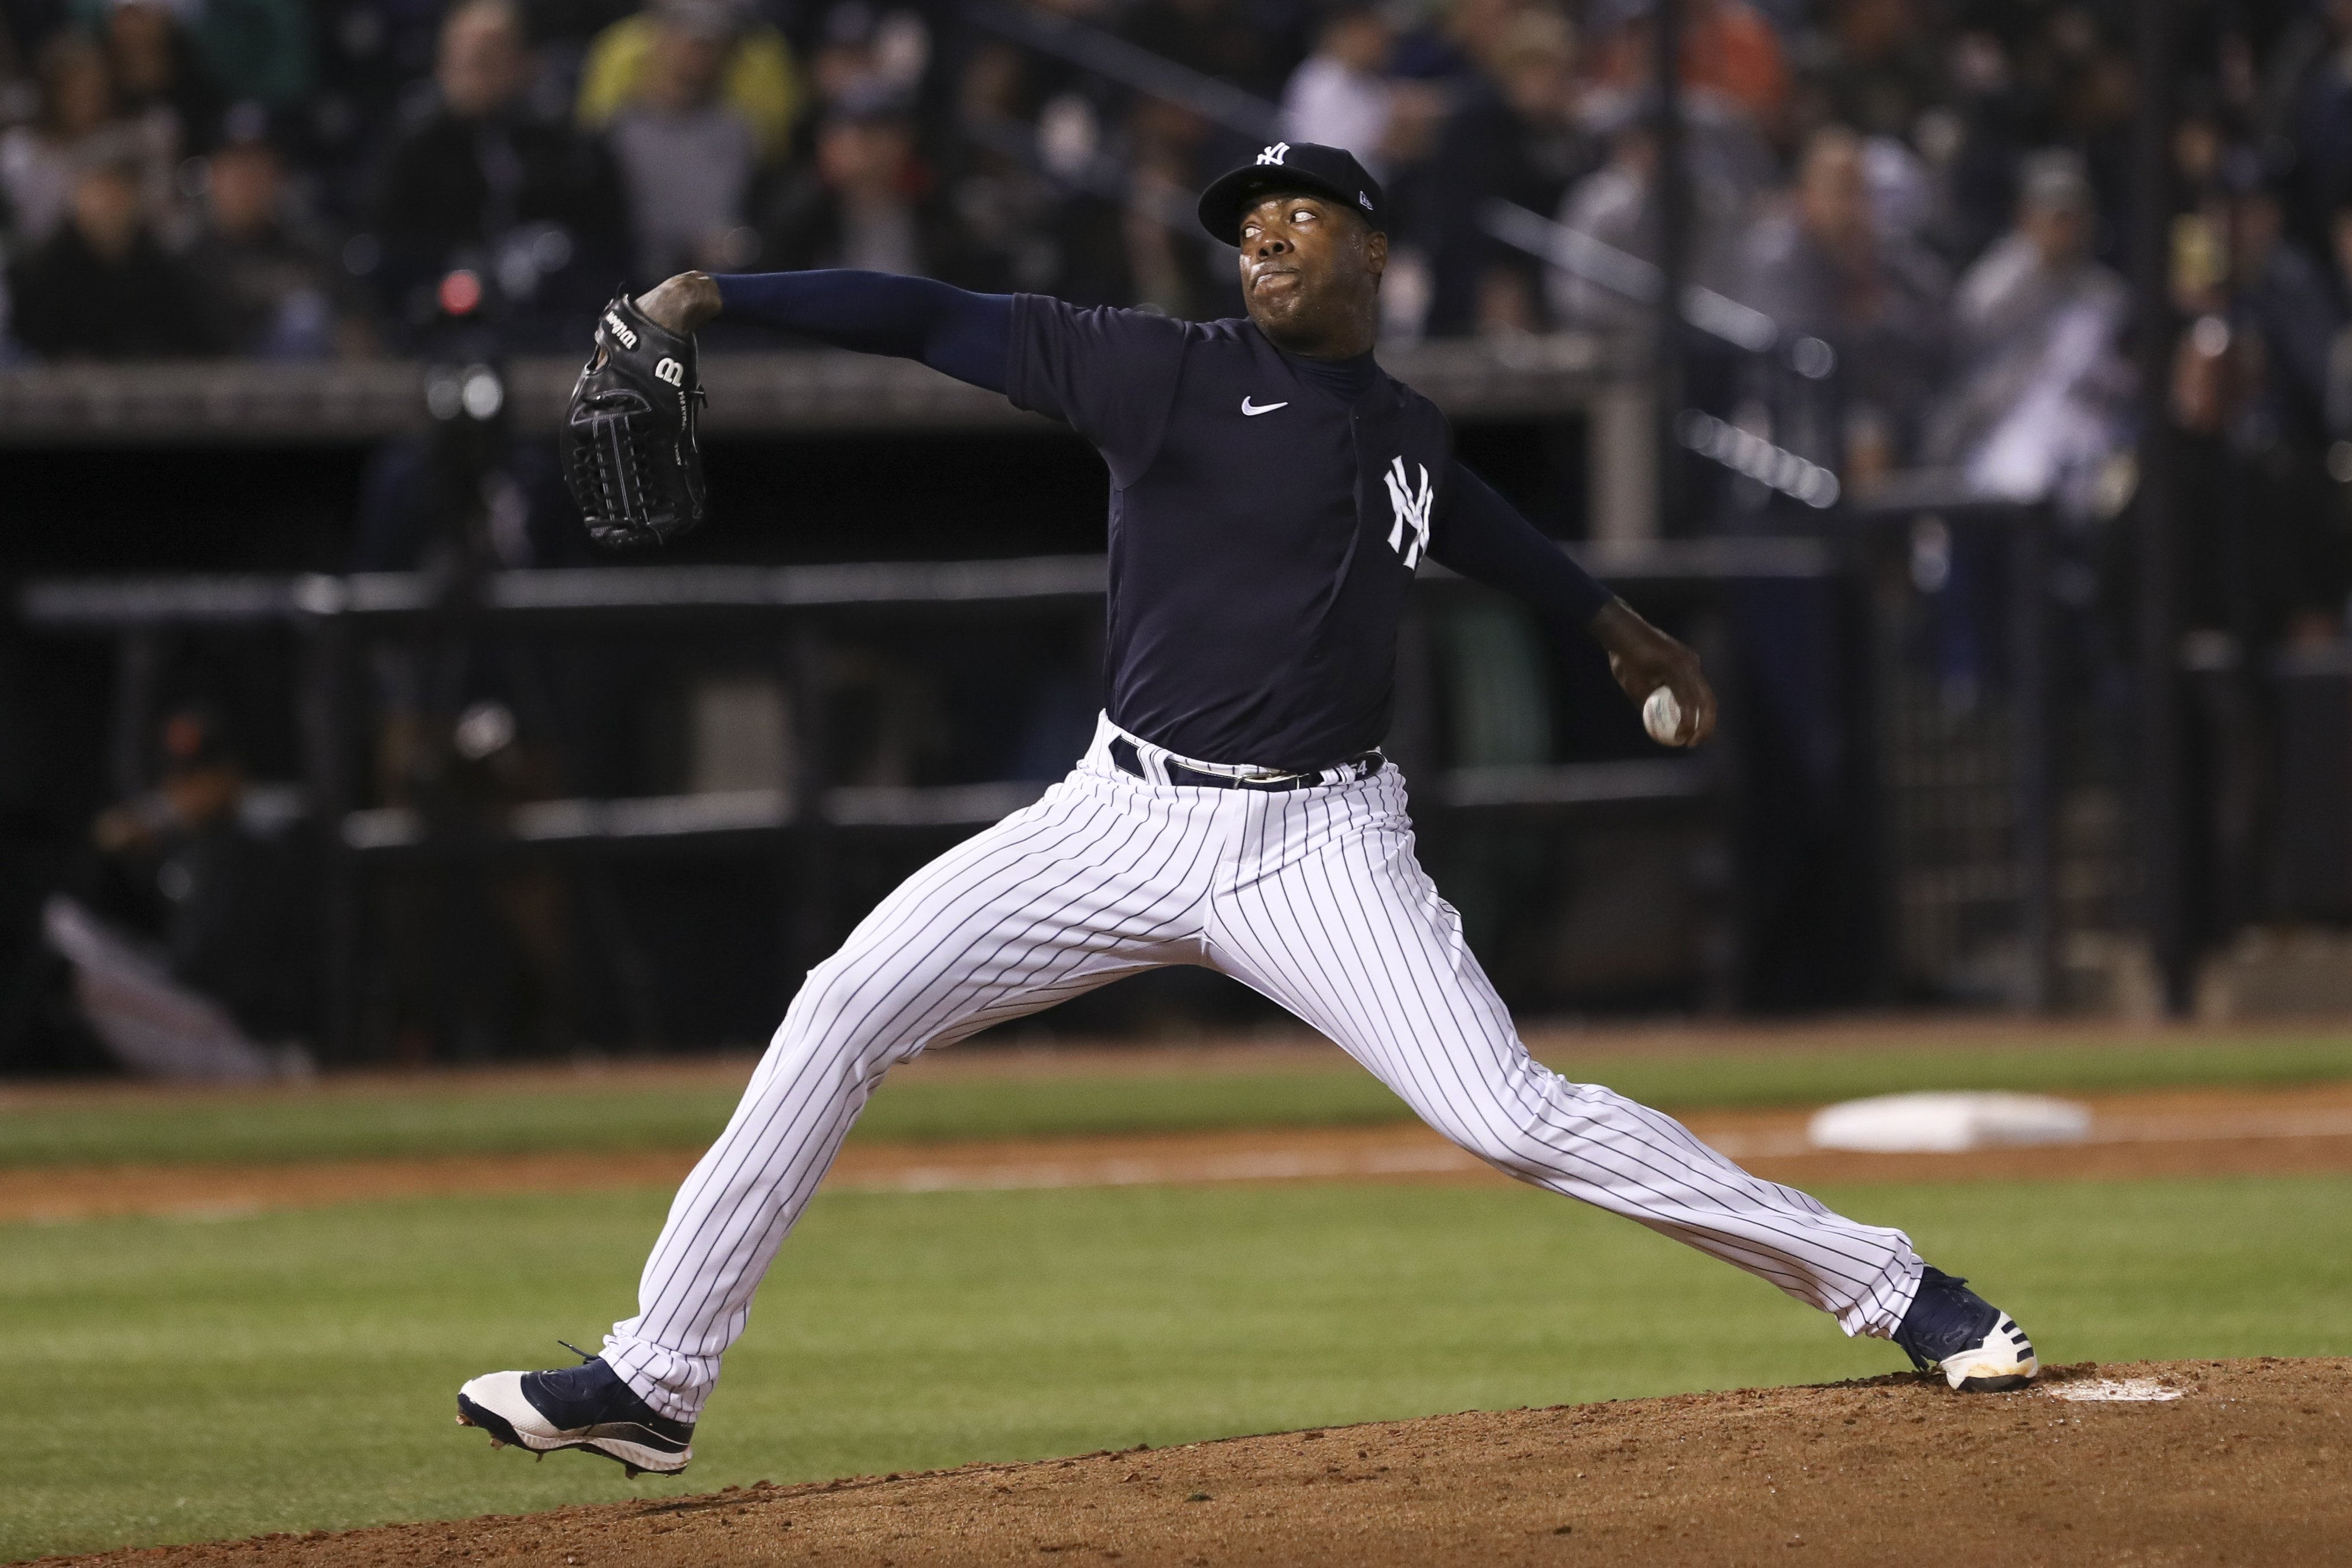 Yankees' Aroldis Chapman tests positive for coronavirus, says manager